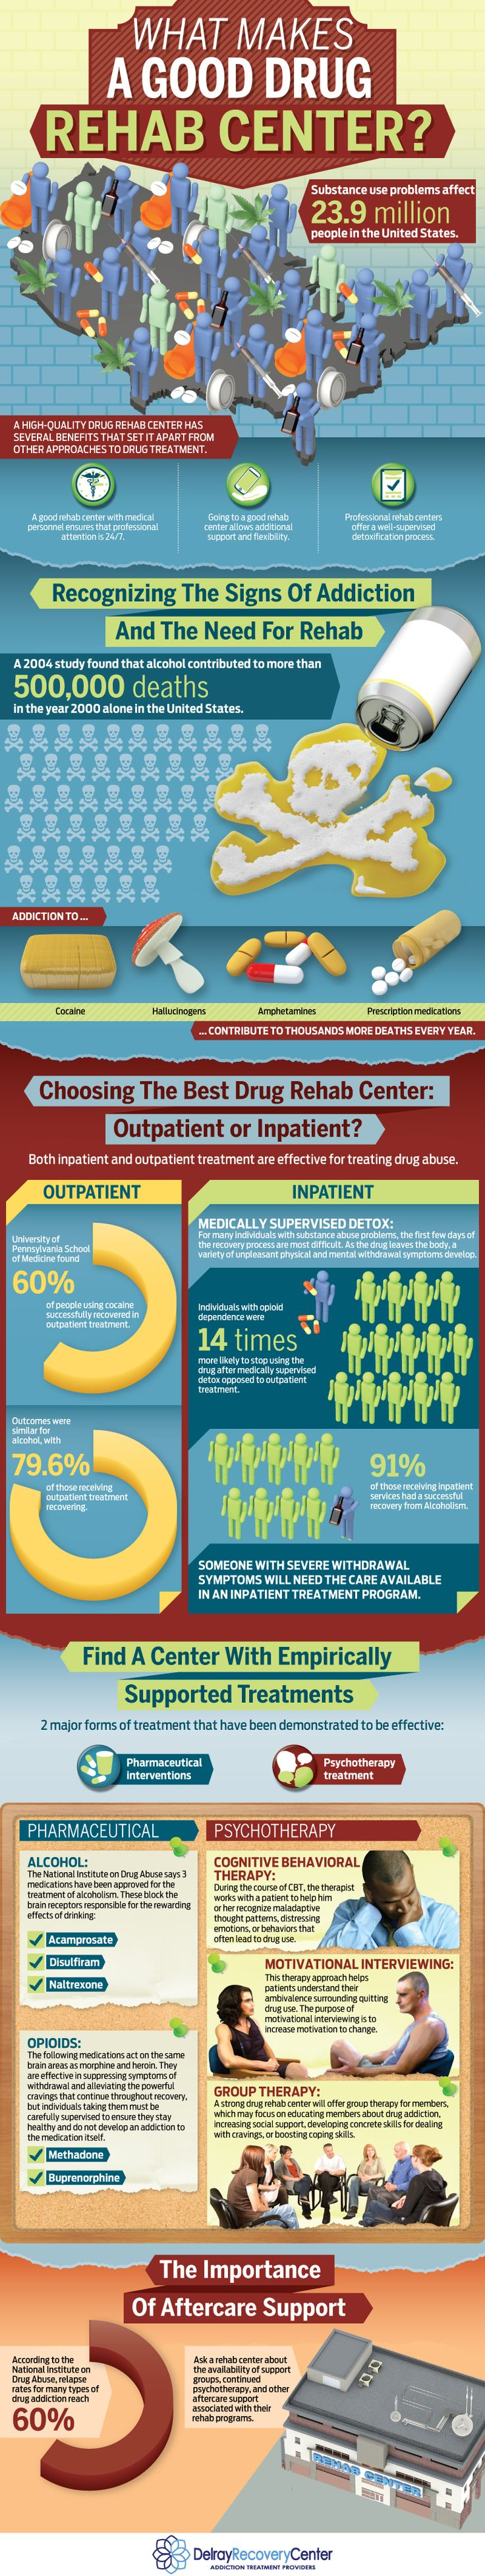 recovery for drug addicts and alcoholics Addiction recovery programs provide some of the best chances for long-term recovery by giving substance abusers the physical and psychological support they need to beat substance dependency substance abusers who are prepared to turn their lives around have a number of drug and alcohol recovery programs to.